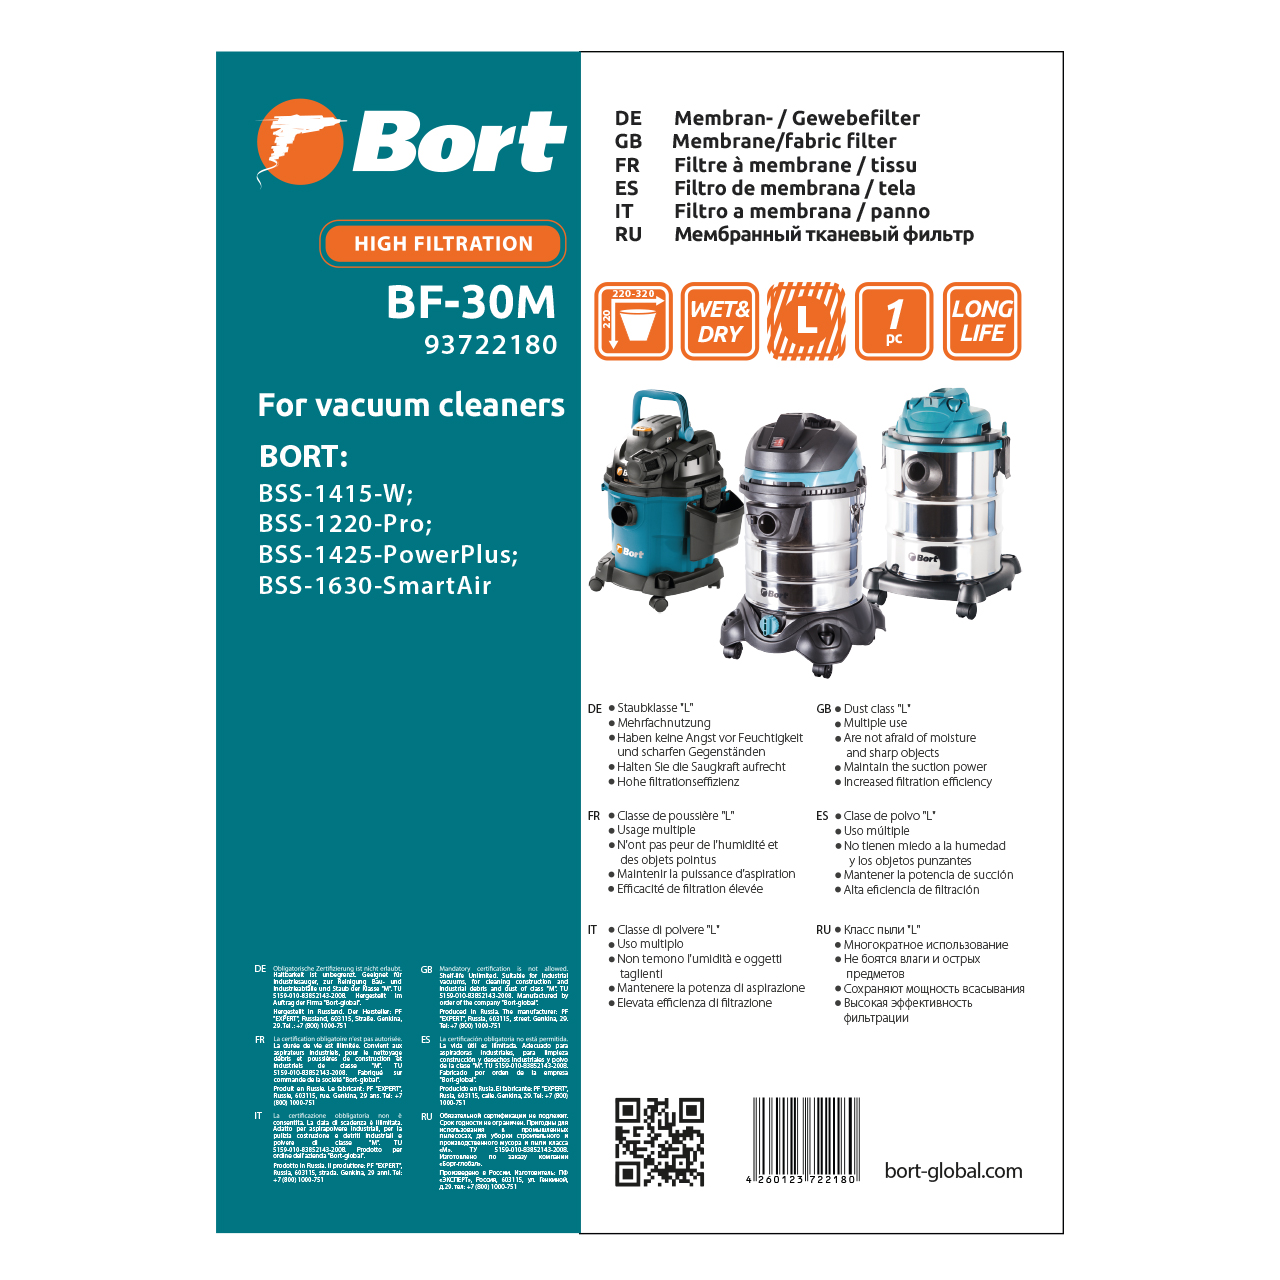 Filter for vacuum cleaner fabric Bort BF-30M suitable BSS-1415-W; BORT BSS-1220-Pro; BSS-1425-PowerPlus